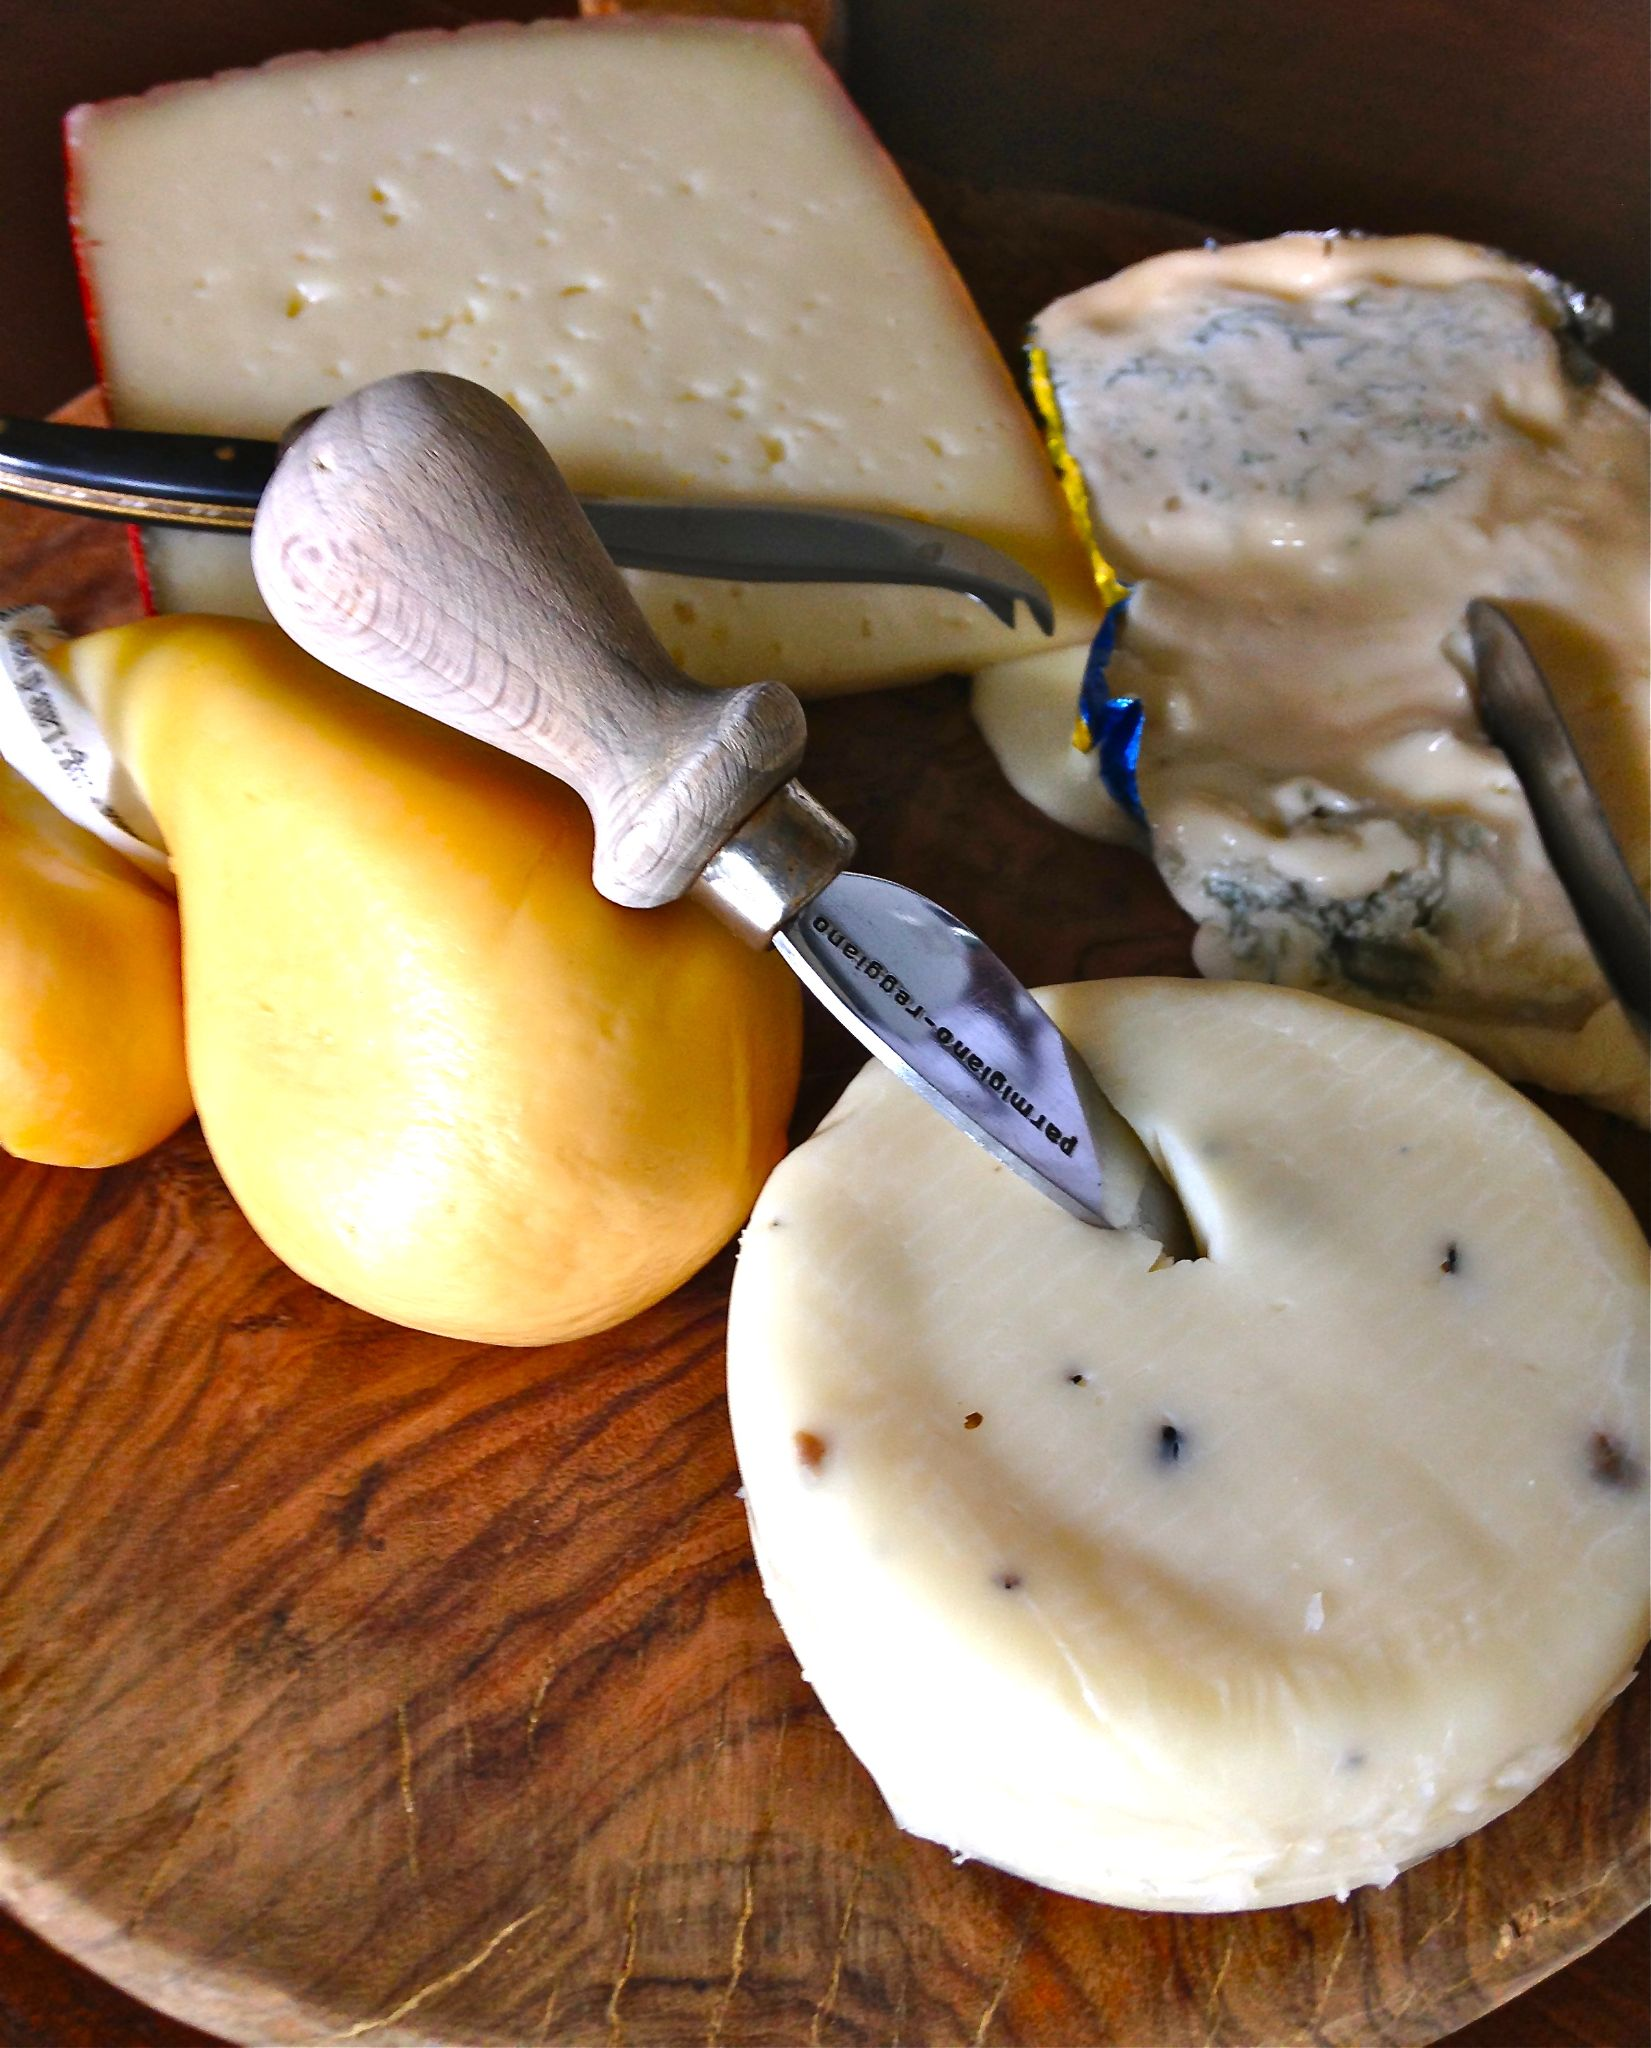 Glorious Cheese by evelyn.amis